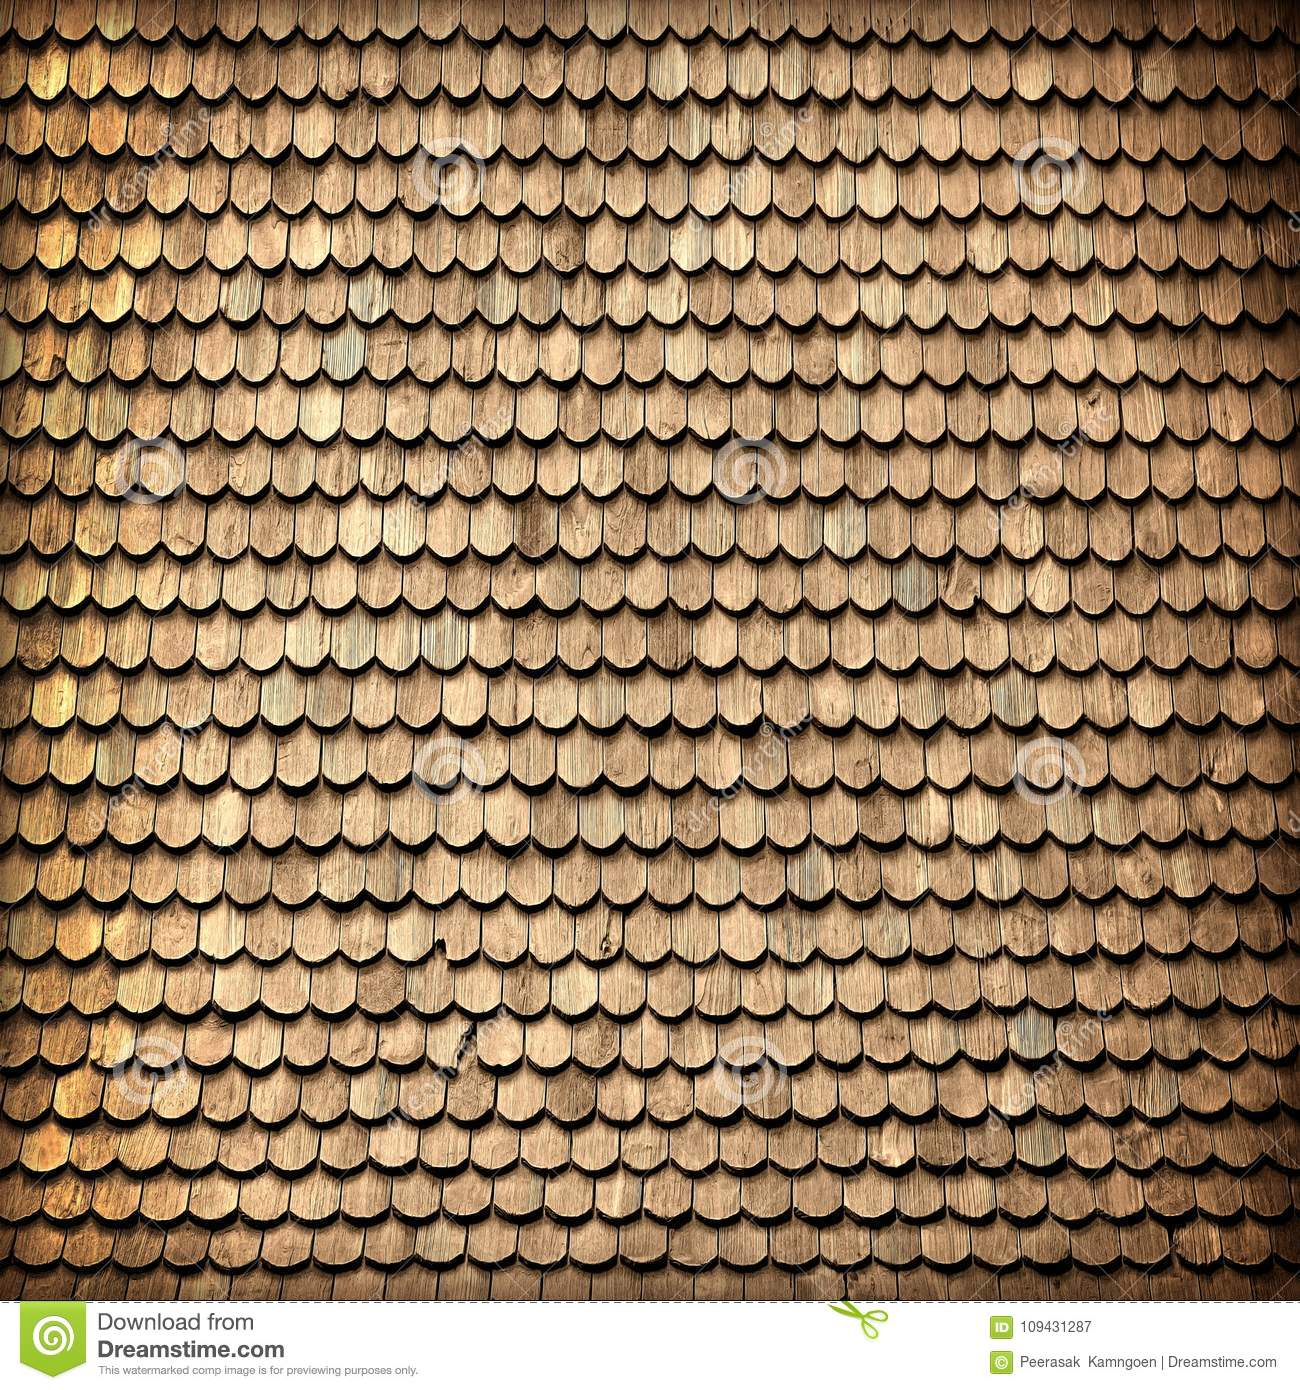 Wooden Roof Texture Background Natural Wood Pattern For Design And Decor Stock Image Image Of Detail Overlap 109431287